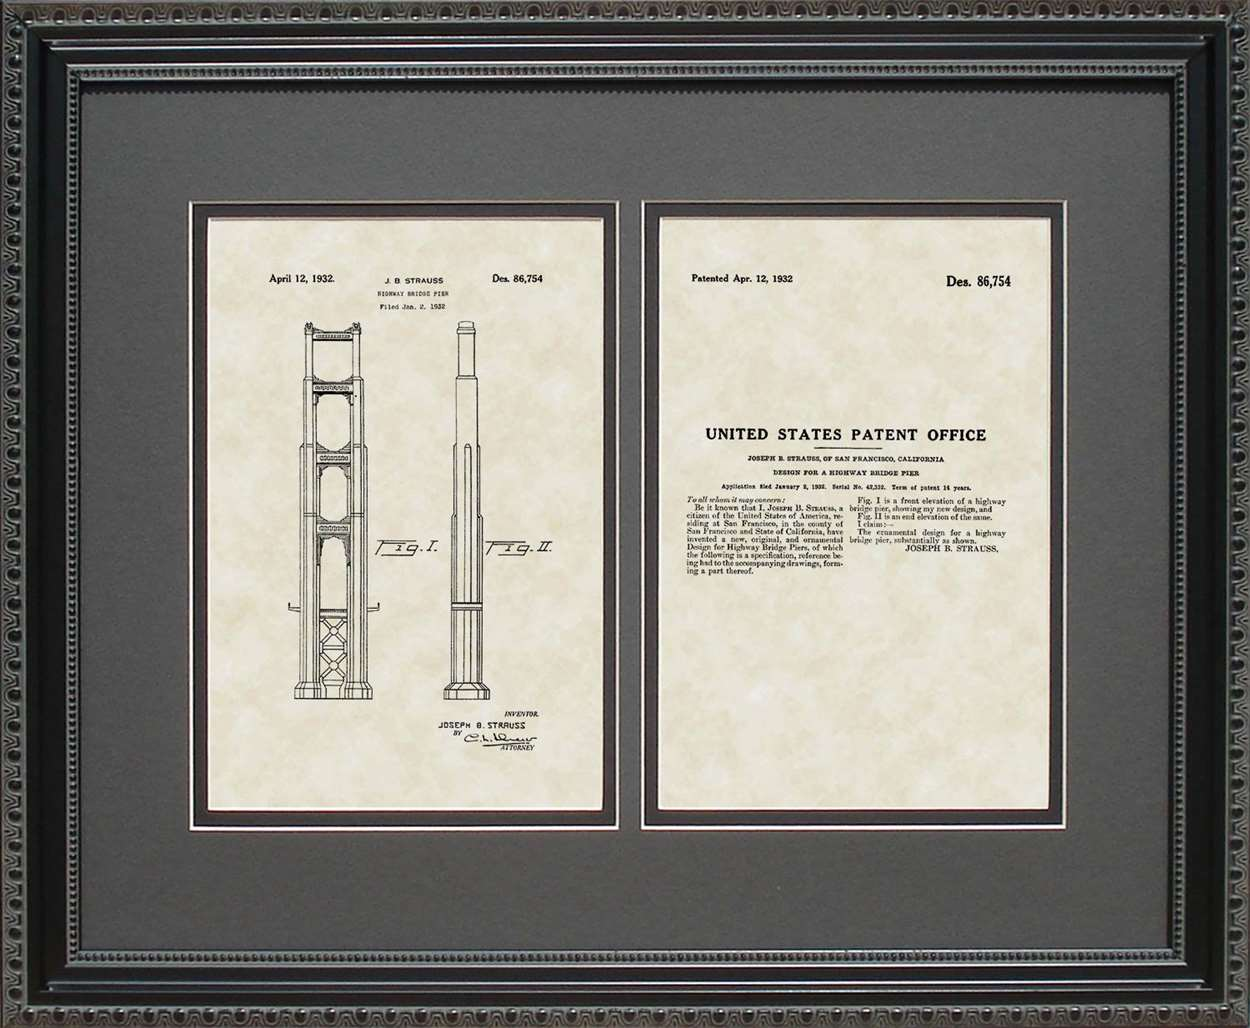 Pier/Golden Gate Bridge Patent, Art & Copy, Strauss, 1932, 16x20